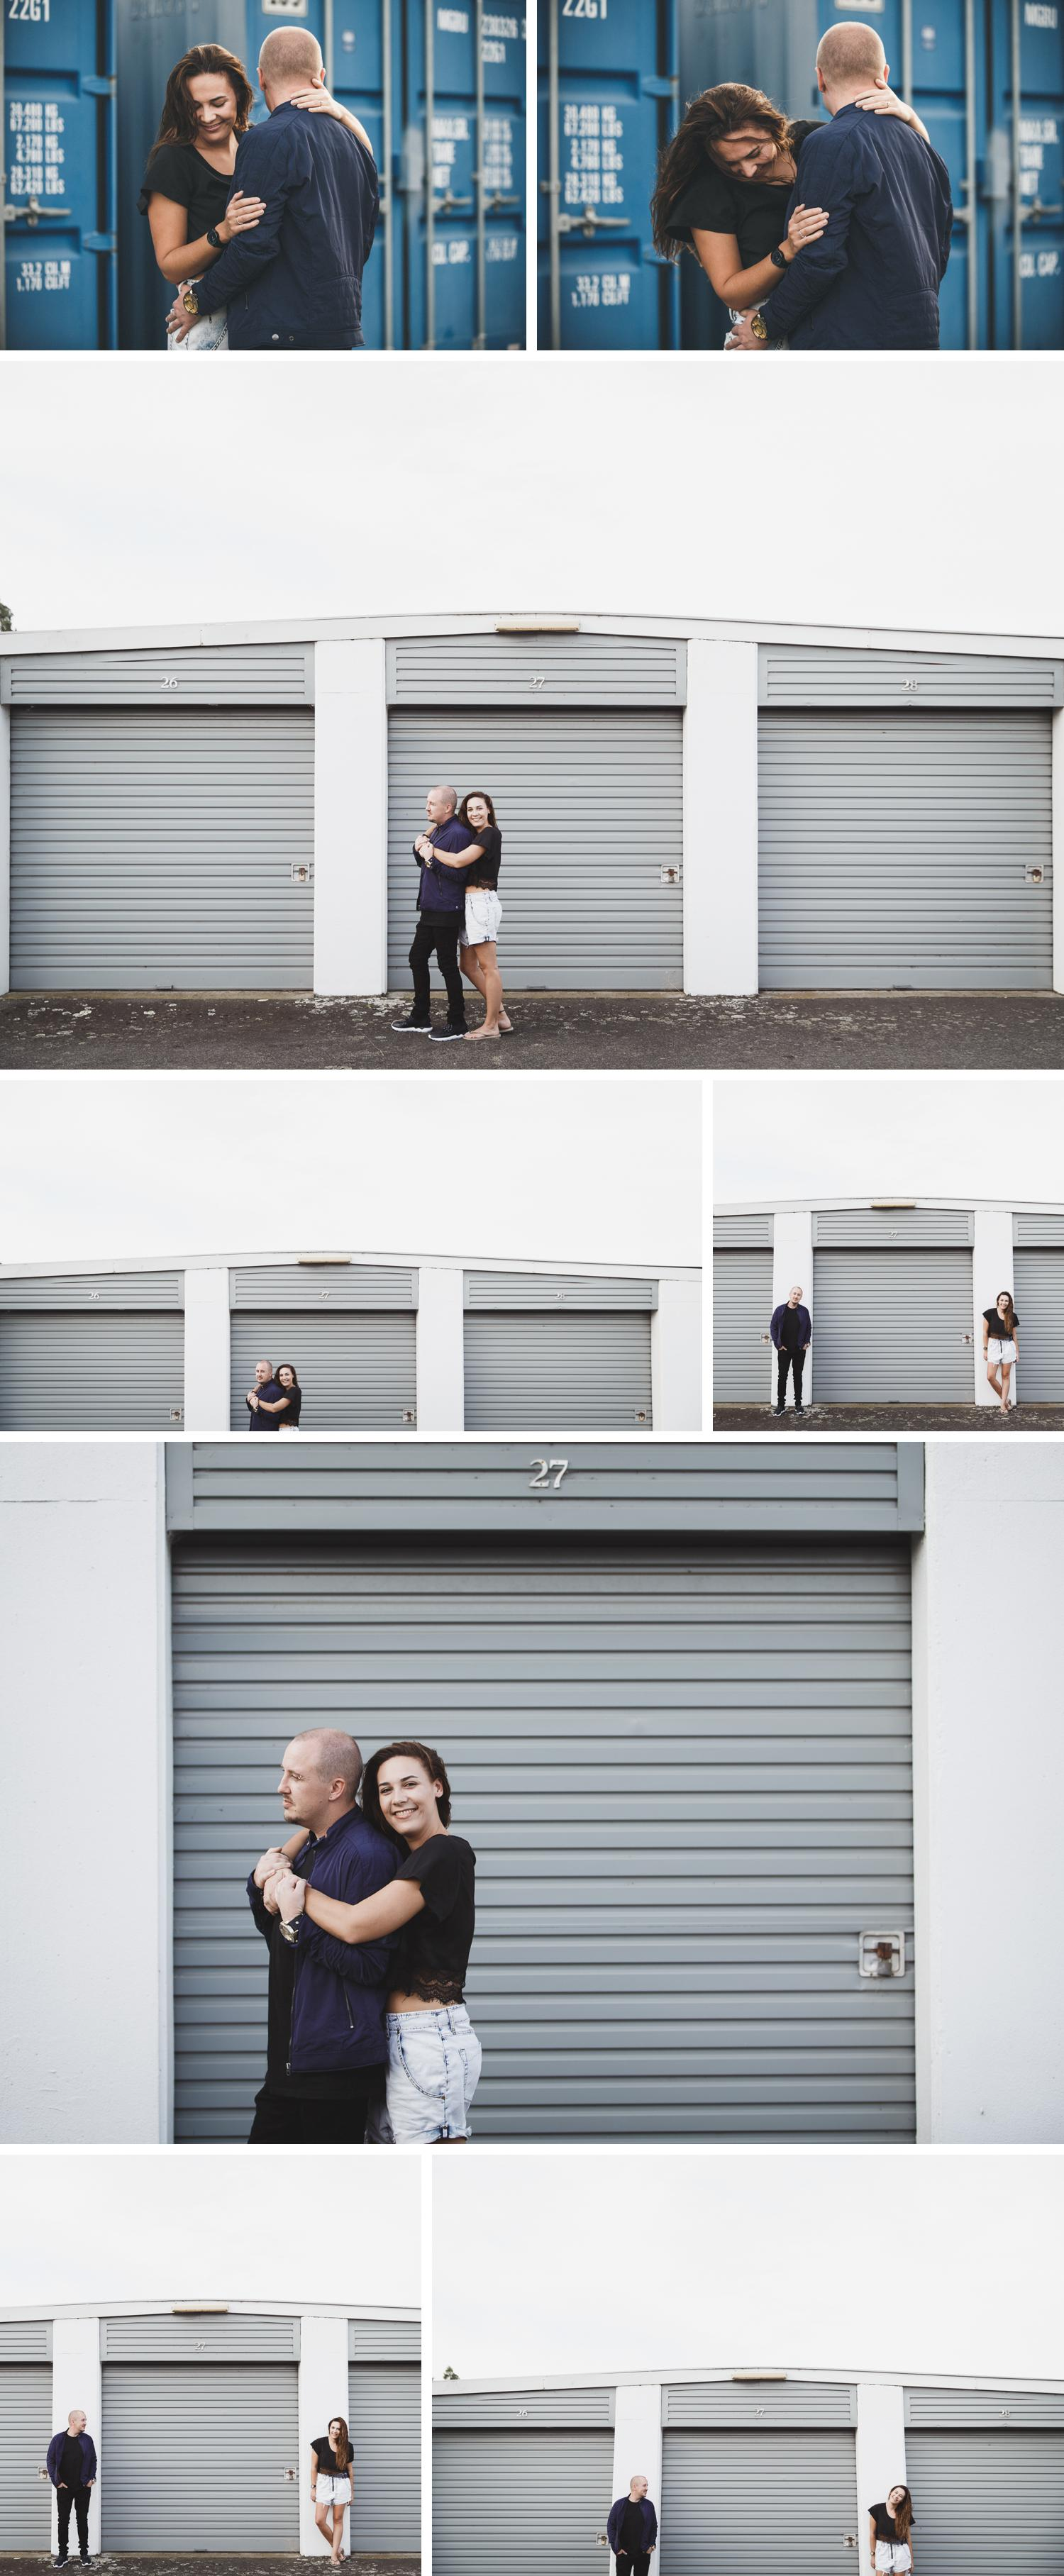 Shipping Containers Engagement Shoot, Gippsland Engagement Shoot, Cute Couple Photos by Danae Studios, Couple Embracing